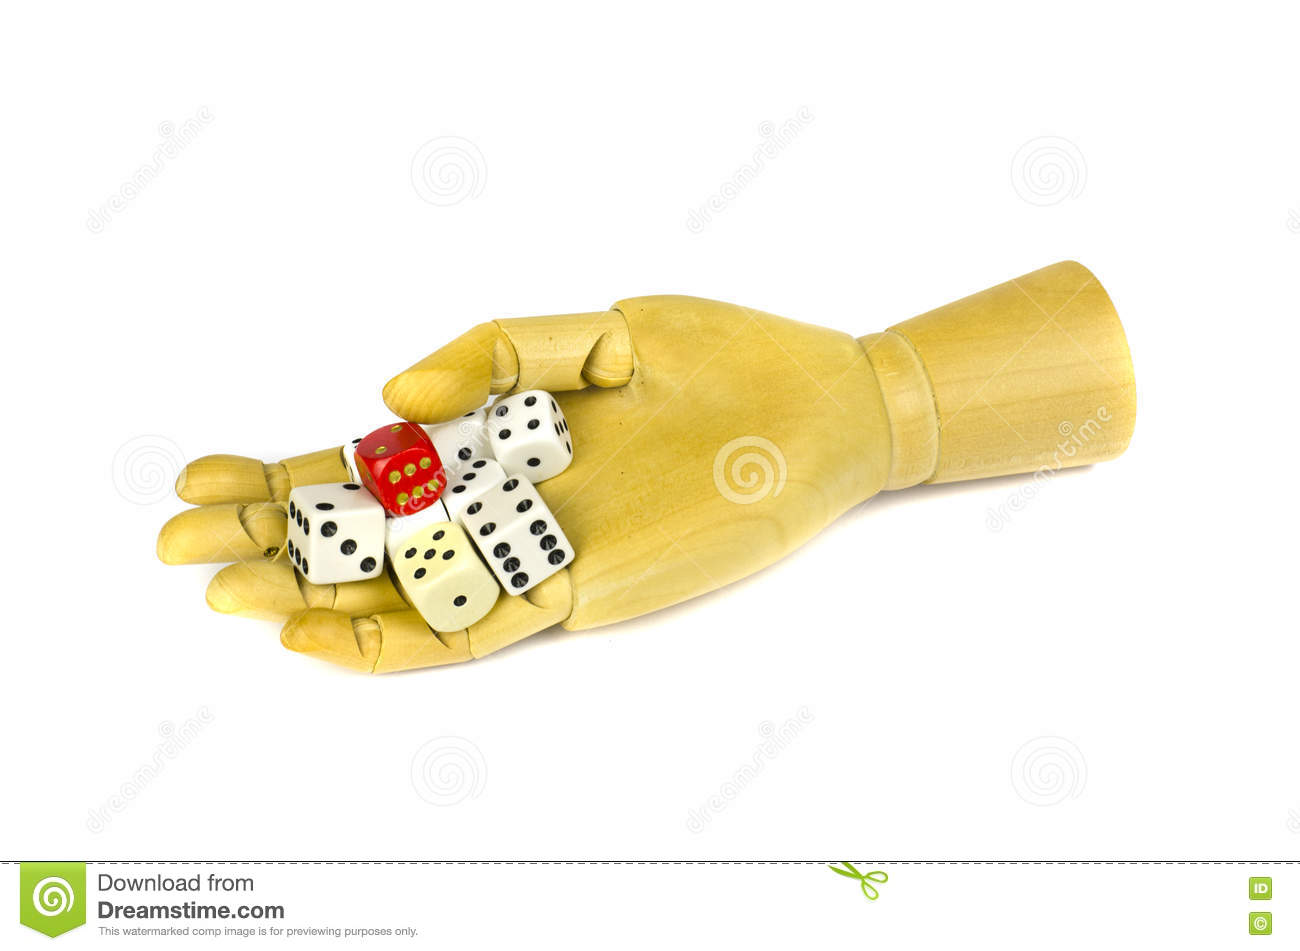 Wooden artist manikin hand with colorful bones dice